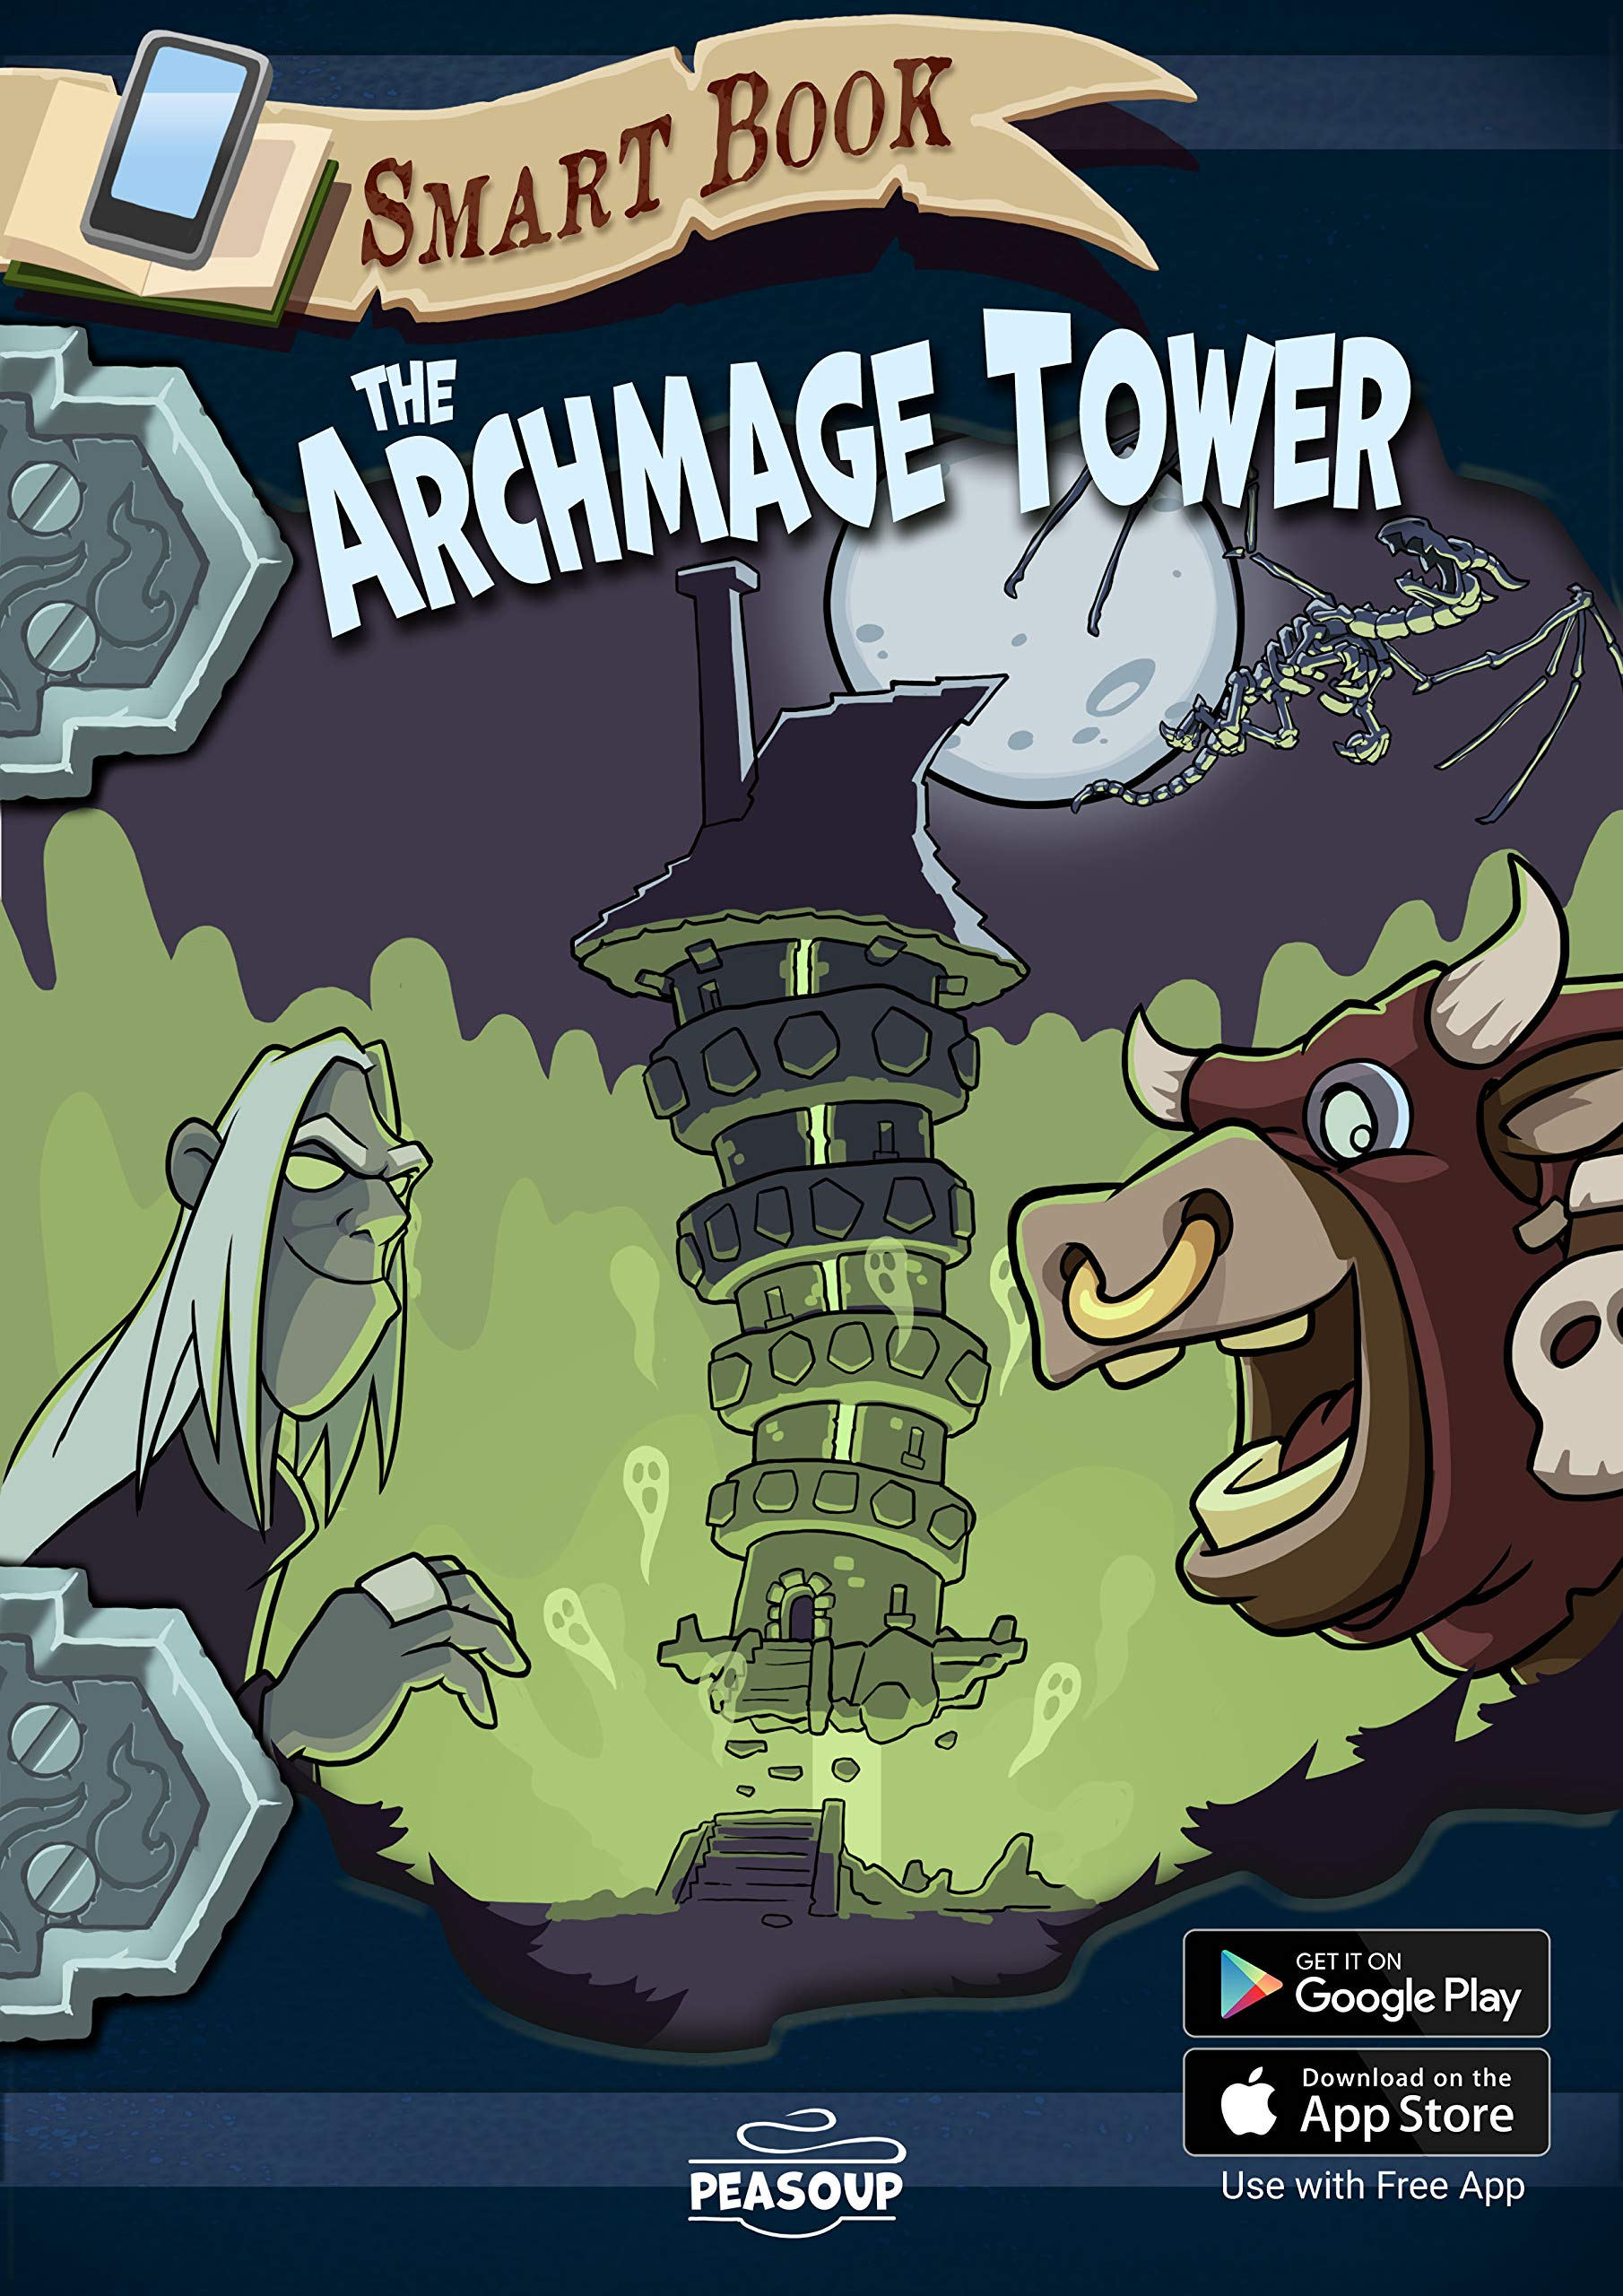 The Archmage Tower: : Interactive Story for Kids Age 8-13 | Choose Your Own Adventure, Solve Tricky Puzzles | Augmented Reality Kids Book + Free App for ... for Children (Peasoup Smart Book Series 2)